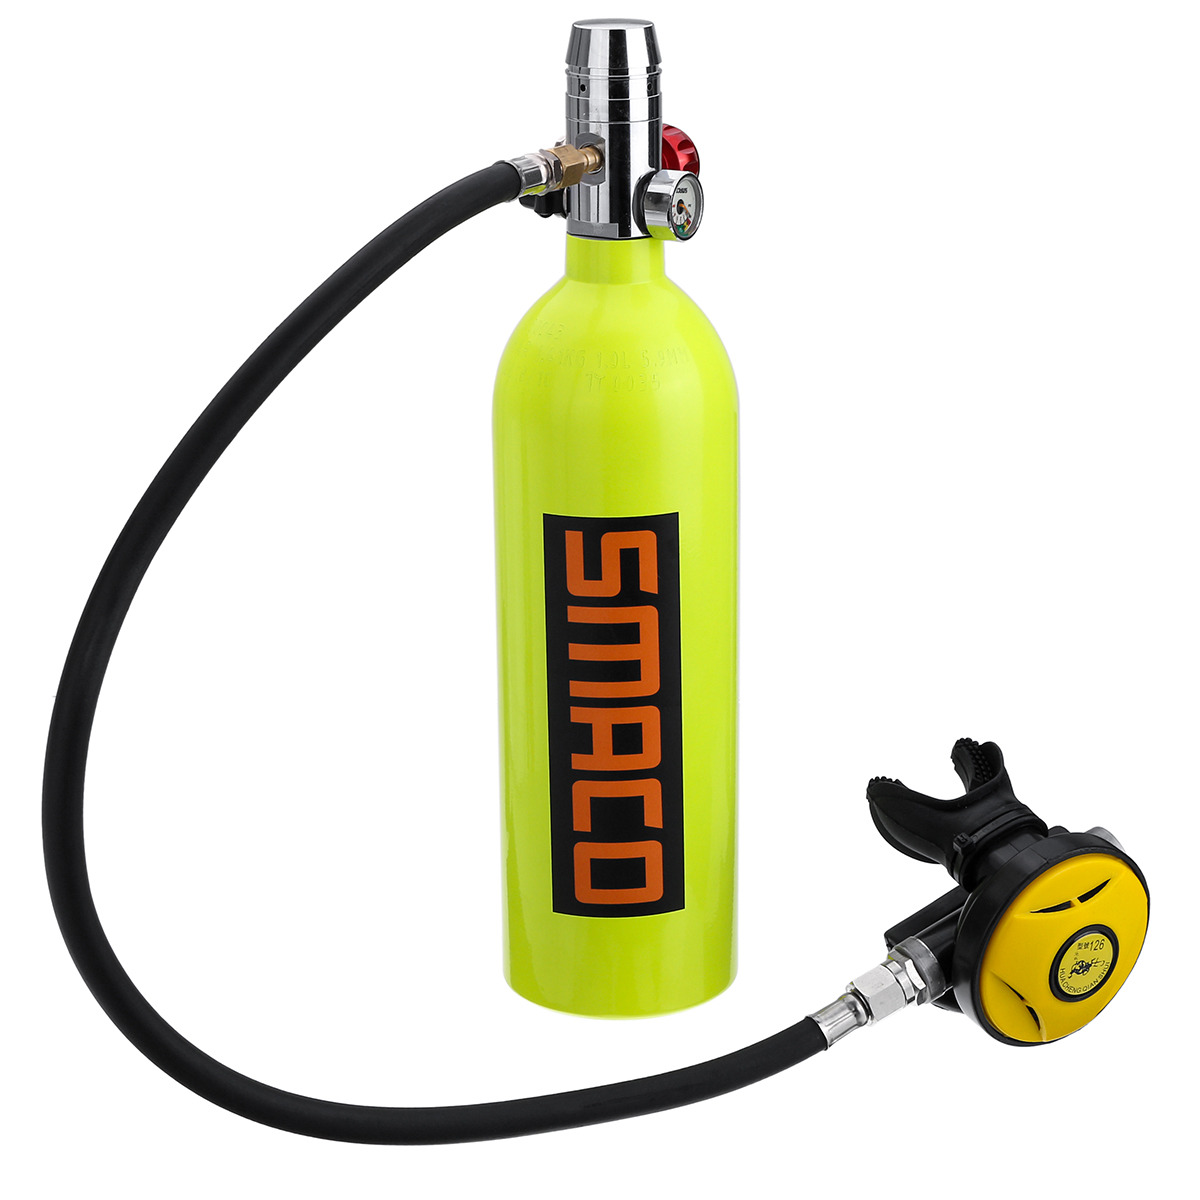 1L Scuba Oxygen Cylinder Diving Air Tank Scuba Regulator Diving Respirator Snorkeling Breathing Equipment Green Orange Black